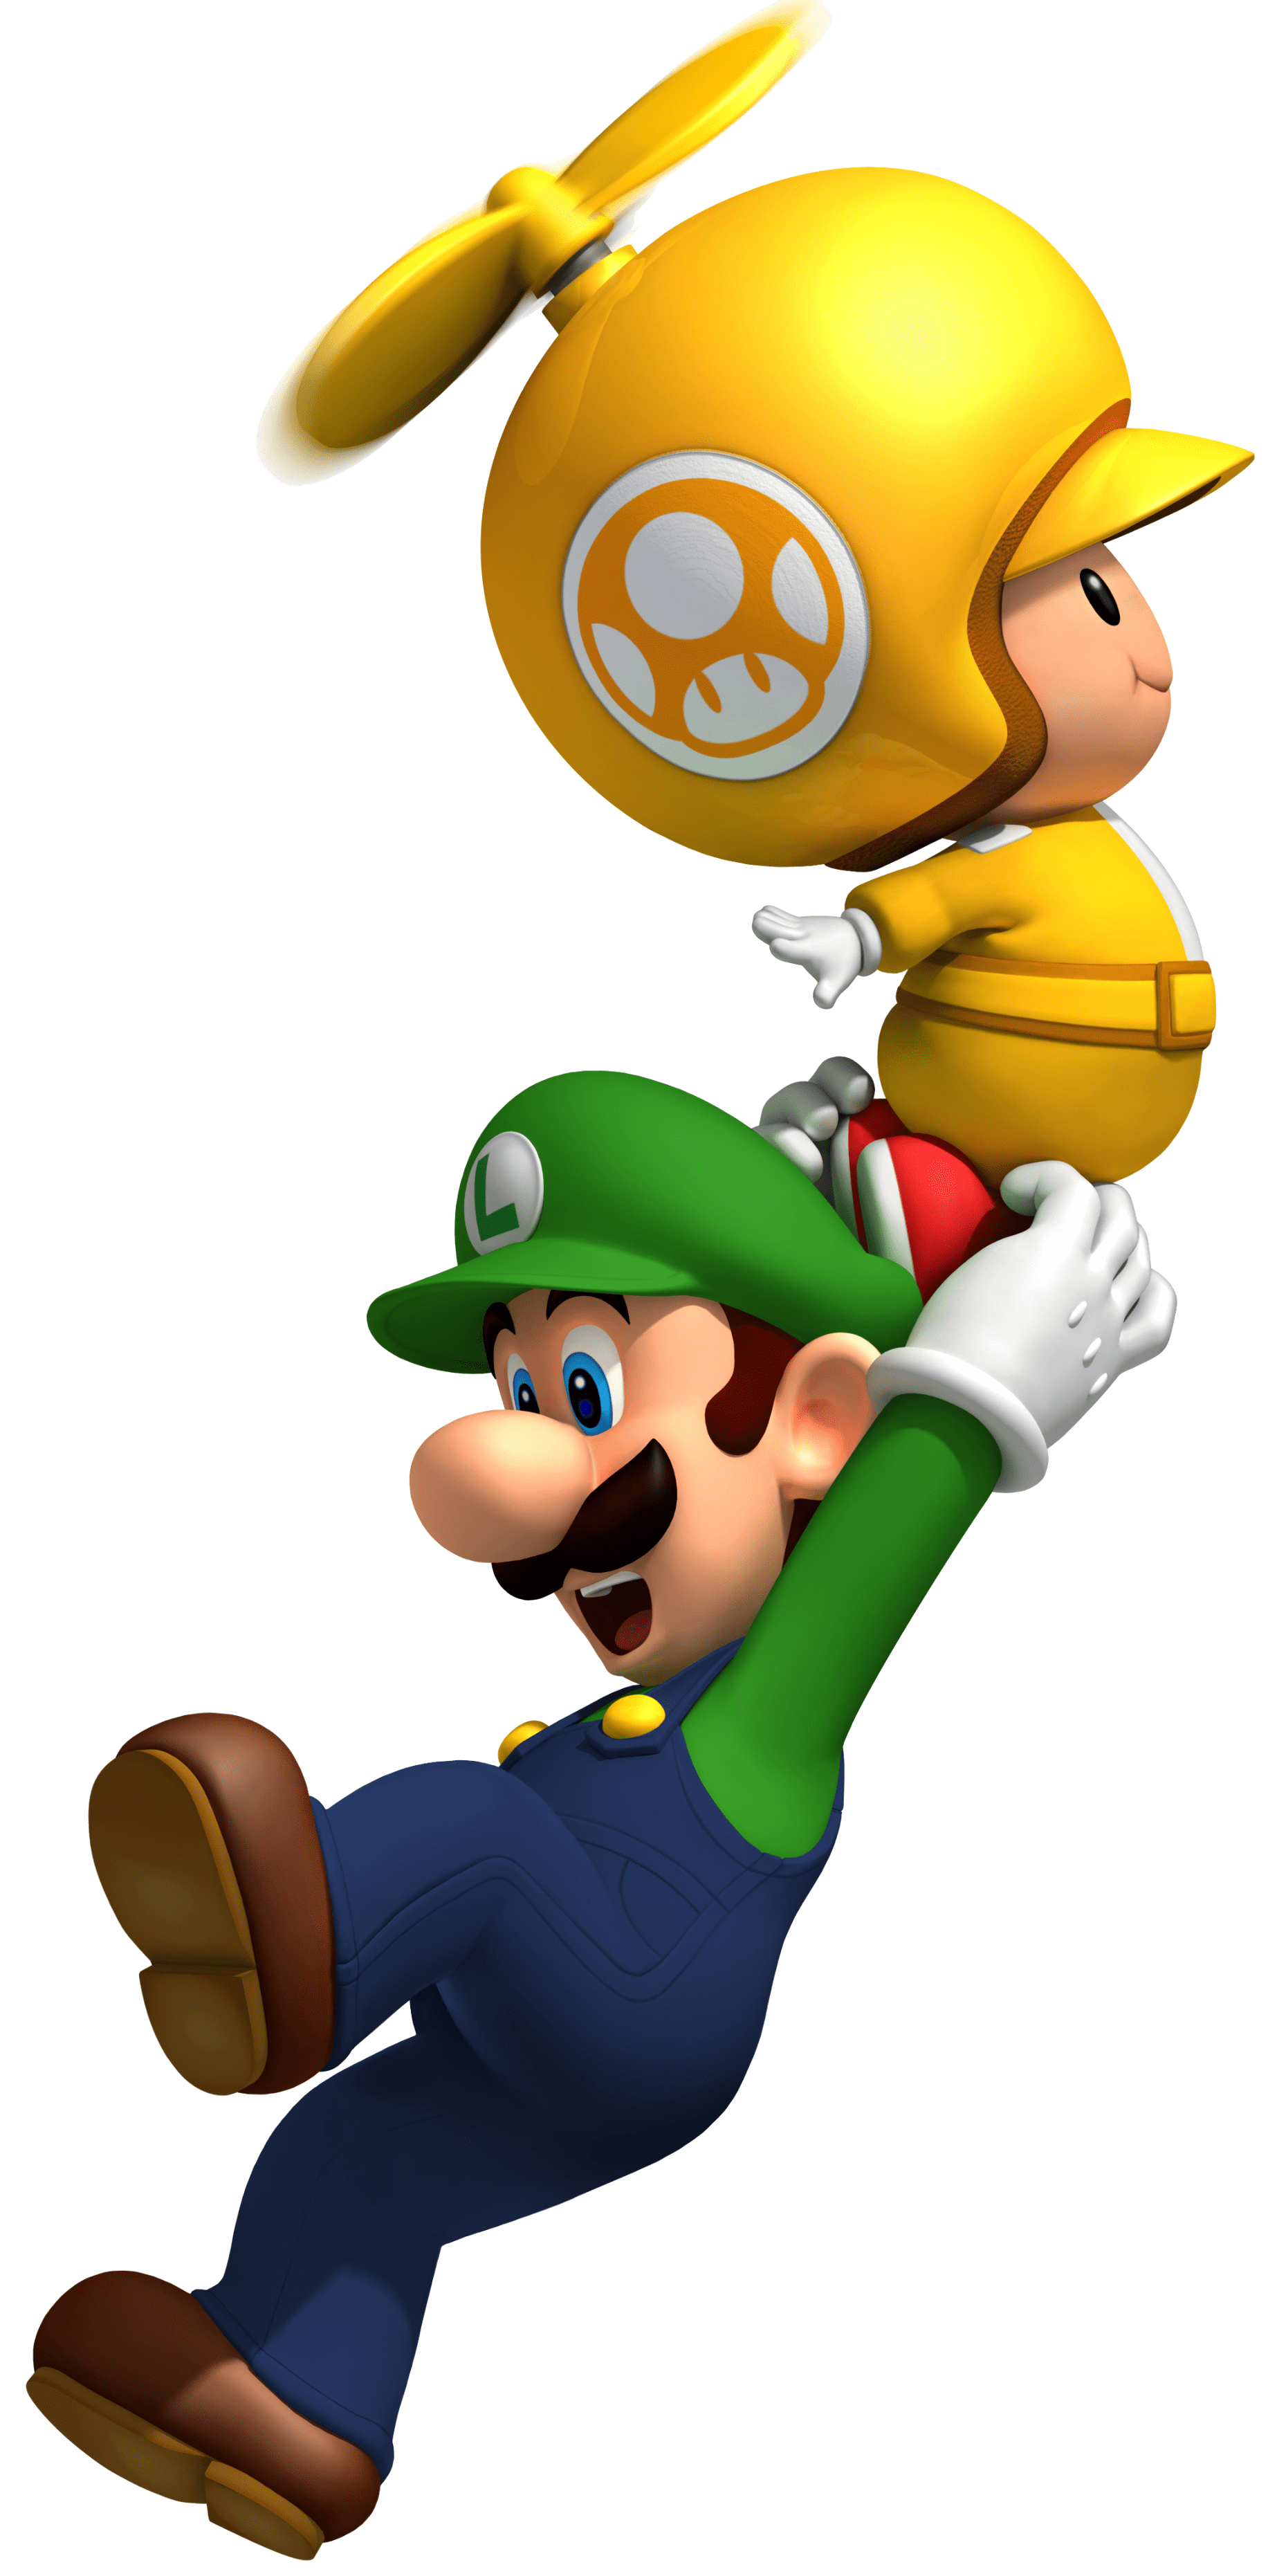 mario bros, propeller toad luigi transparent png stickpng #28344